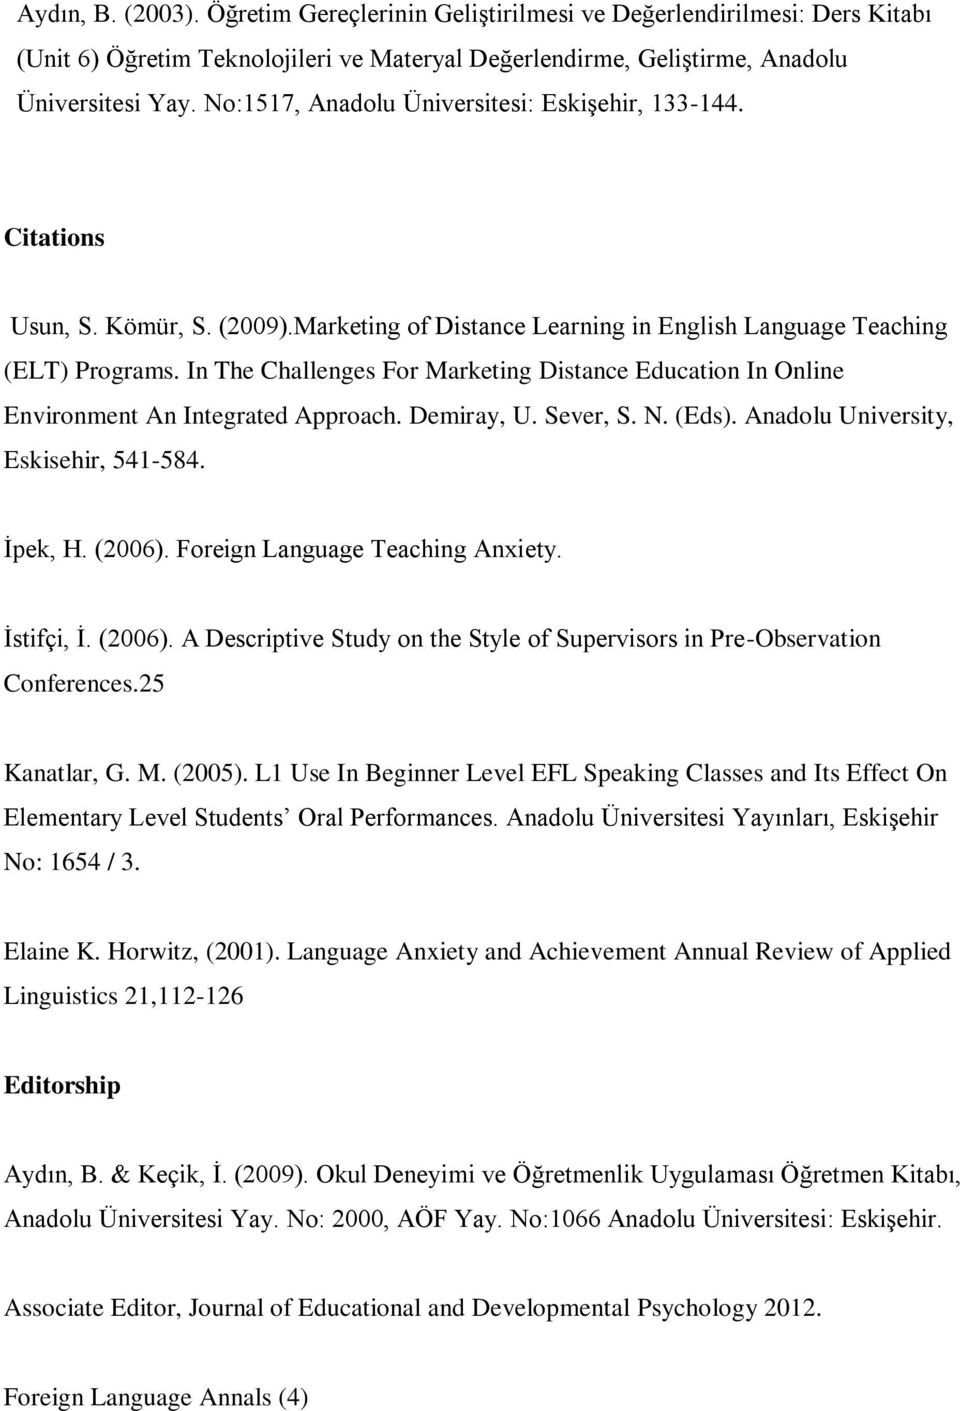 In The Challenges For Marketing Distance Education In Online Environment An Integrated Approach. Demiray, U. Sever, S. N. (Eds). Anadolu University, Eskisehir, 541-584. İpek, H. (2006).